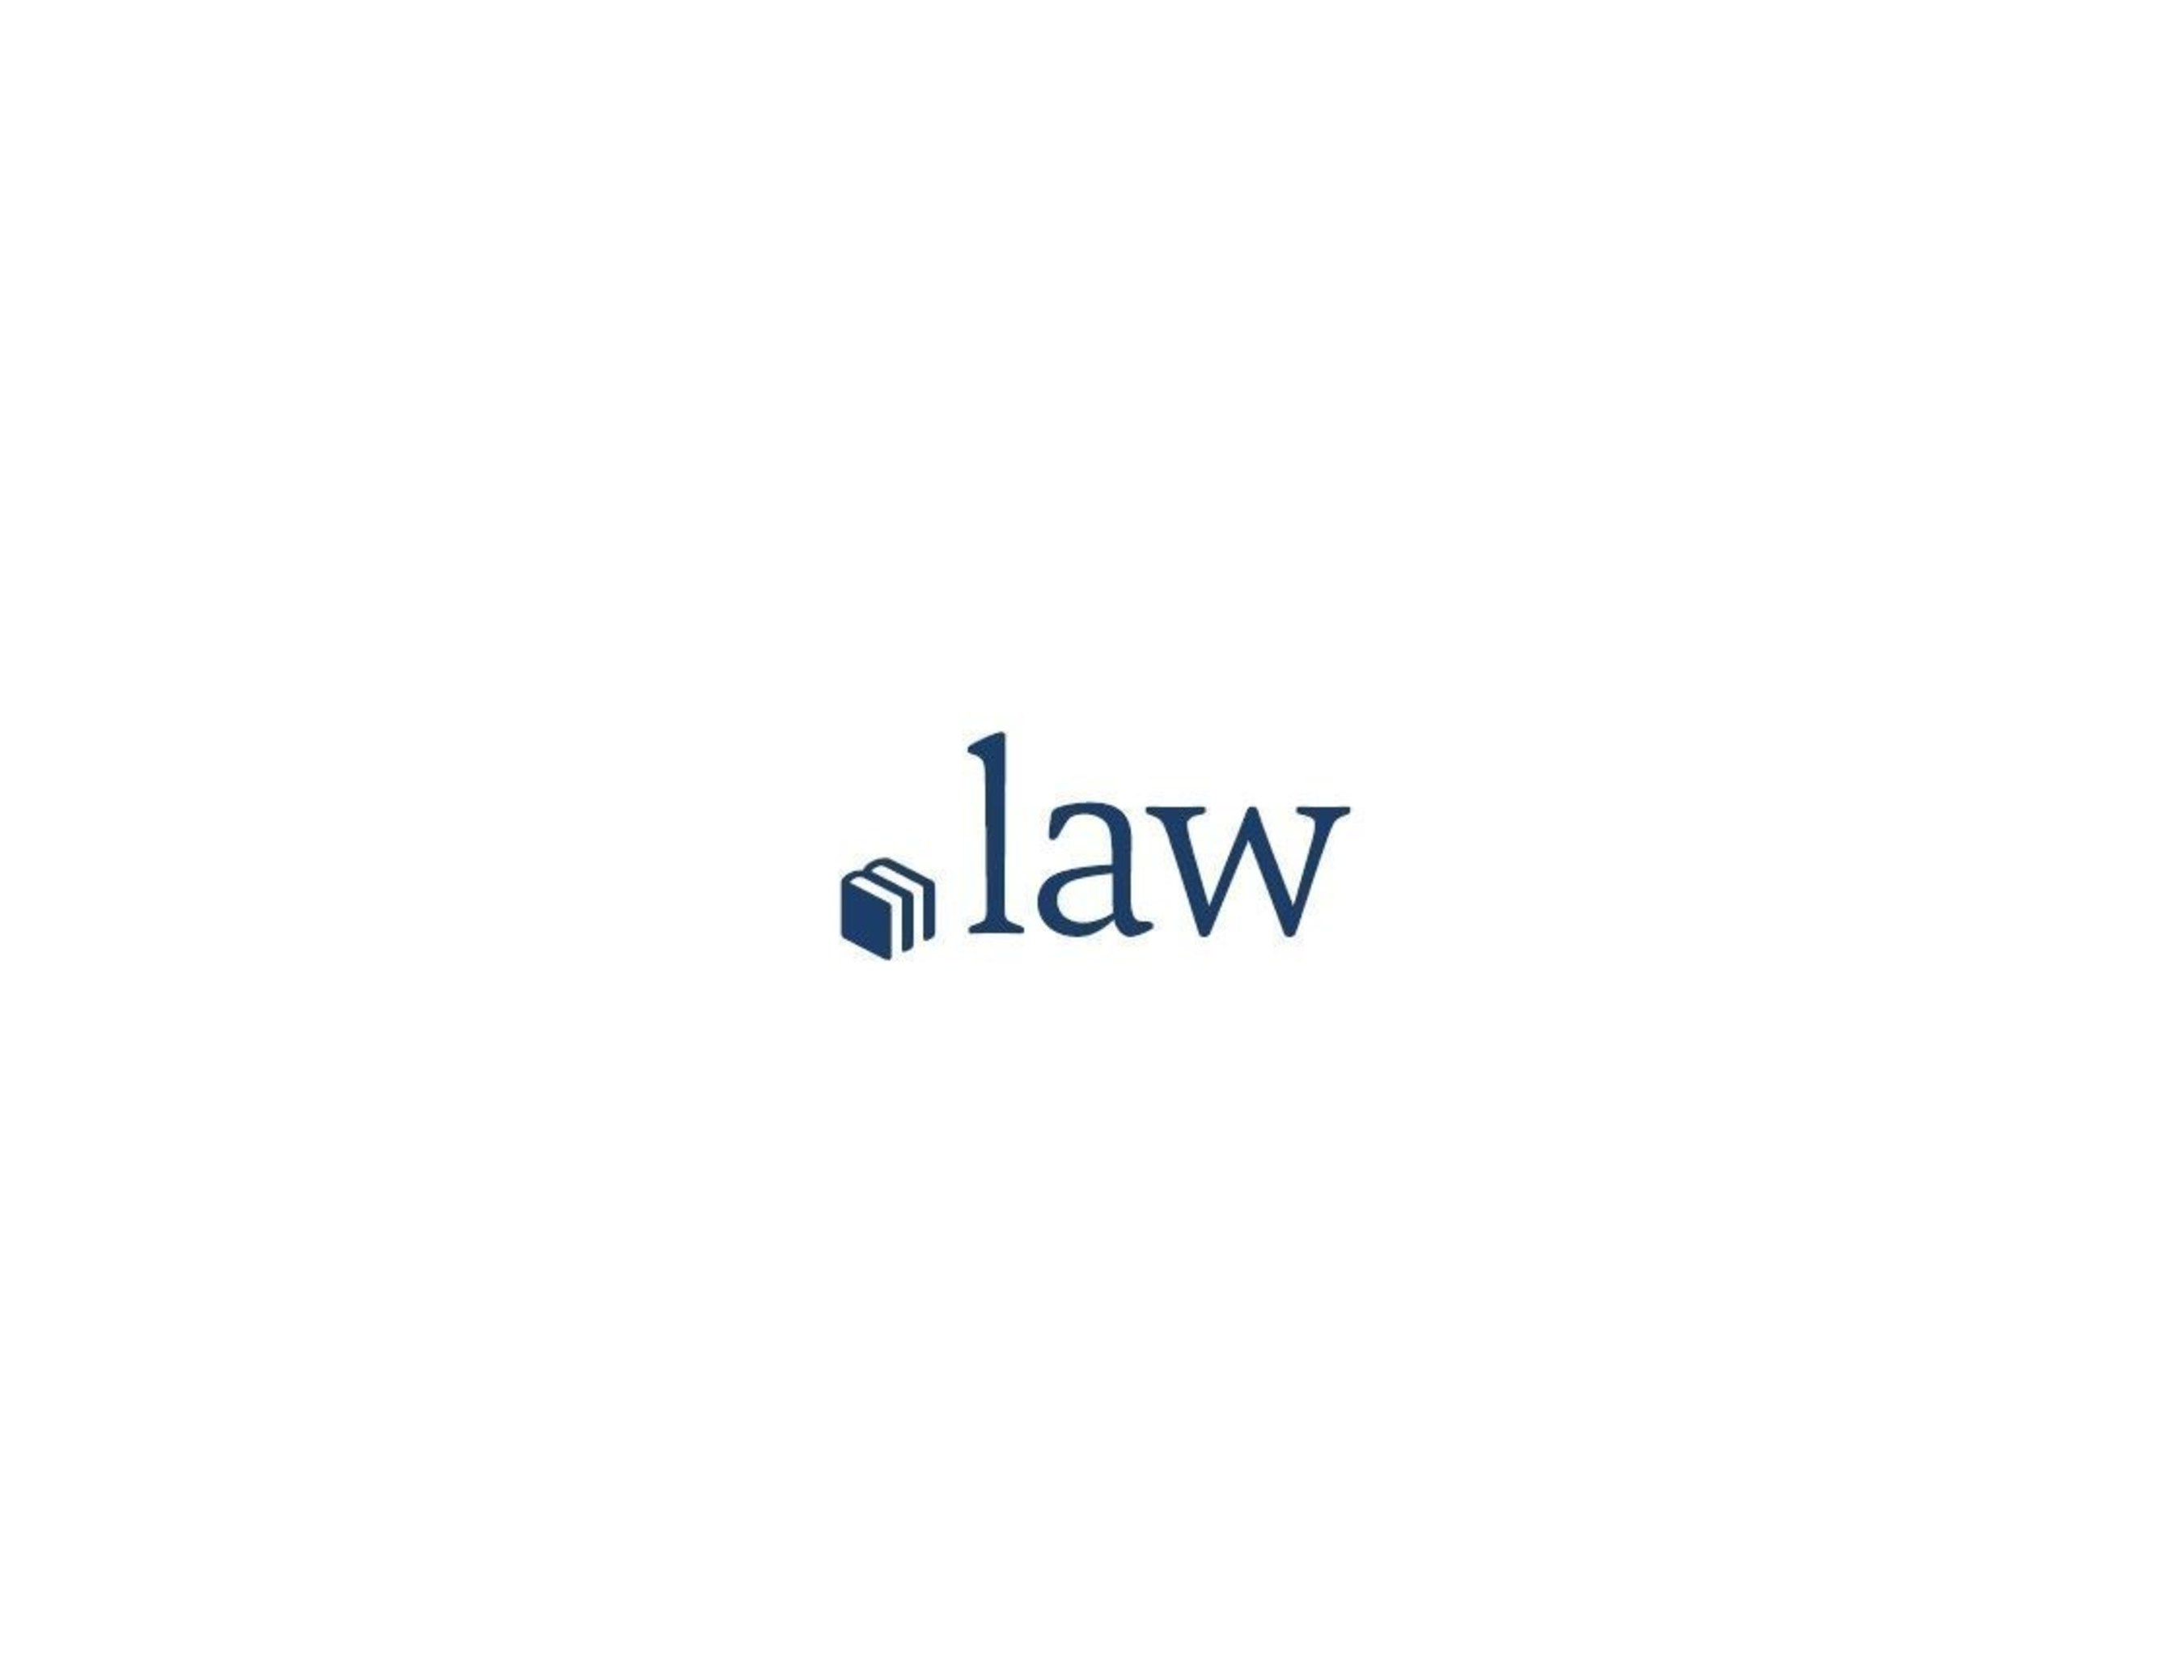 Leading Law Firms Sign on as Early Adopters of '.law' Domain